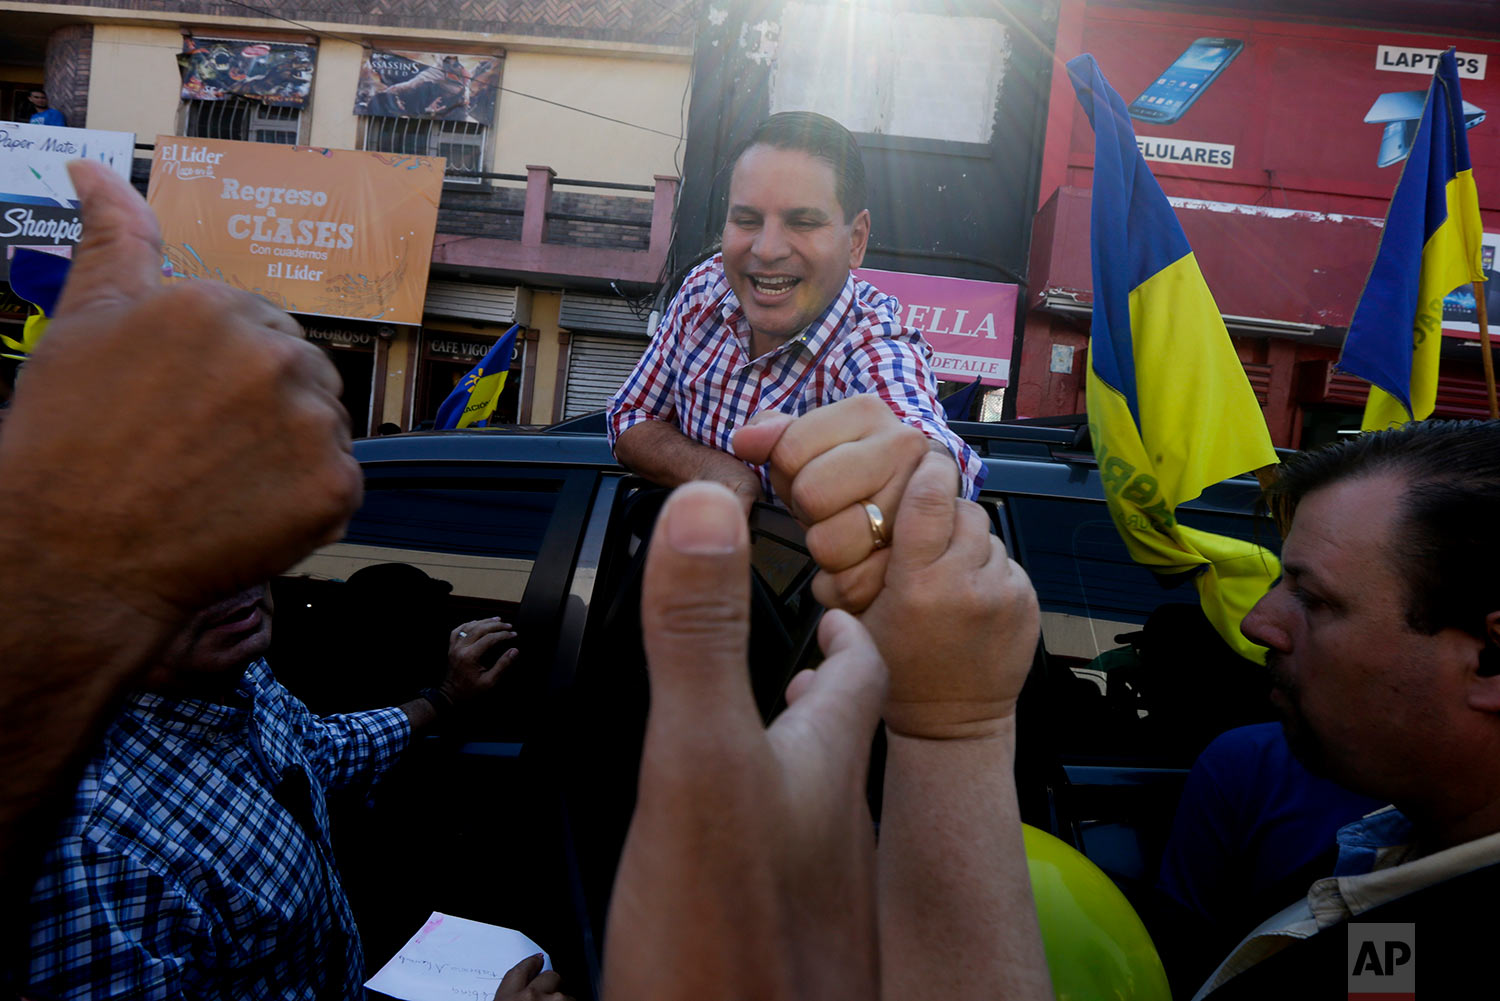 Presidential candidate Fabricio Alvarado, with the National Restoration party, greets supporters outside a market as he campaigns in Heredia, Costa Rica, March 28, 2018. Alvarado won the presidential runoff election on April 1. (AP Photo/Arnulfo Franco)